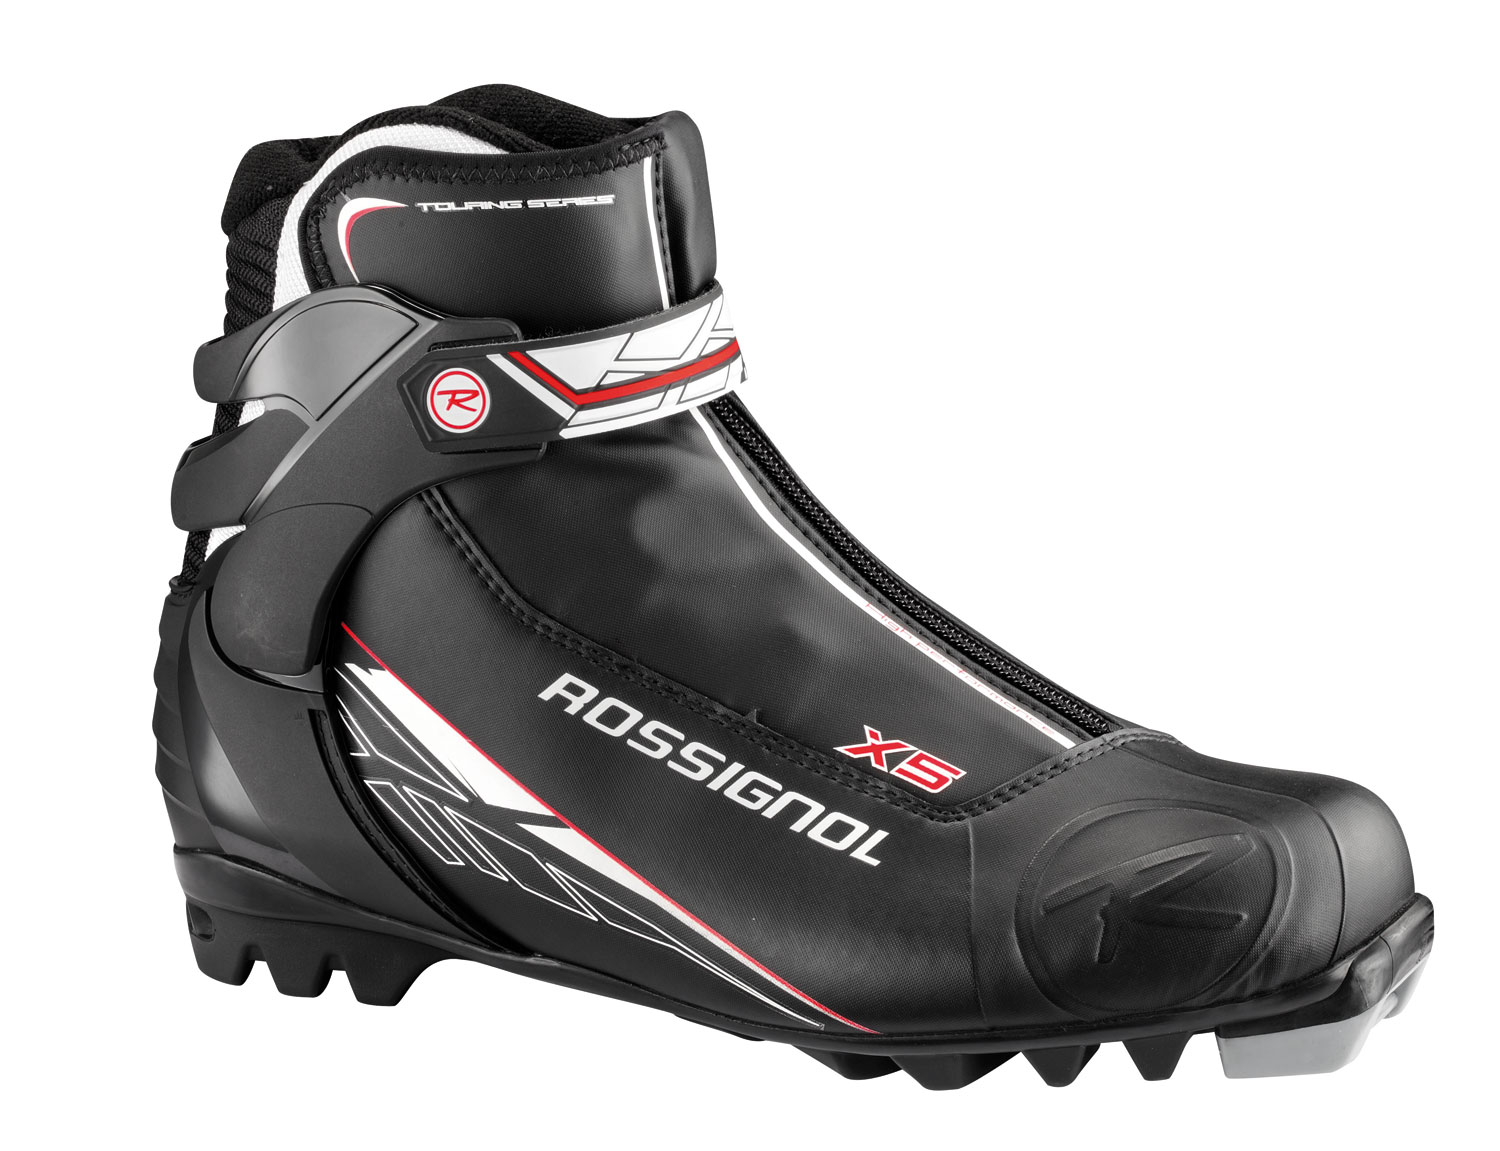 Ski Rossignol's Touring line is our #1 selling boot category and now has all-new fits, features, and rack appeal. These boots also deliver incredible comfort, warmth, and control for recreational skiers and active winter enthusiasts. Featuring men and women-specific fits with thermo-moldable inner liners, Rossignol's Touring line is incredibly user-friendly and great for increasing winter fitness. This line consistently sells to the broadest range of consumers.Key Features of the Rossignol X5 Cross Country Ski Boots:   Sole: T4   Liner: Thermo Fit   Thinsulate - $76.95